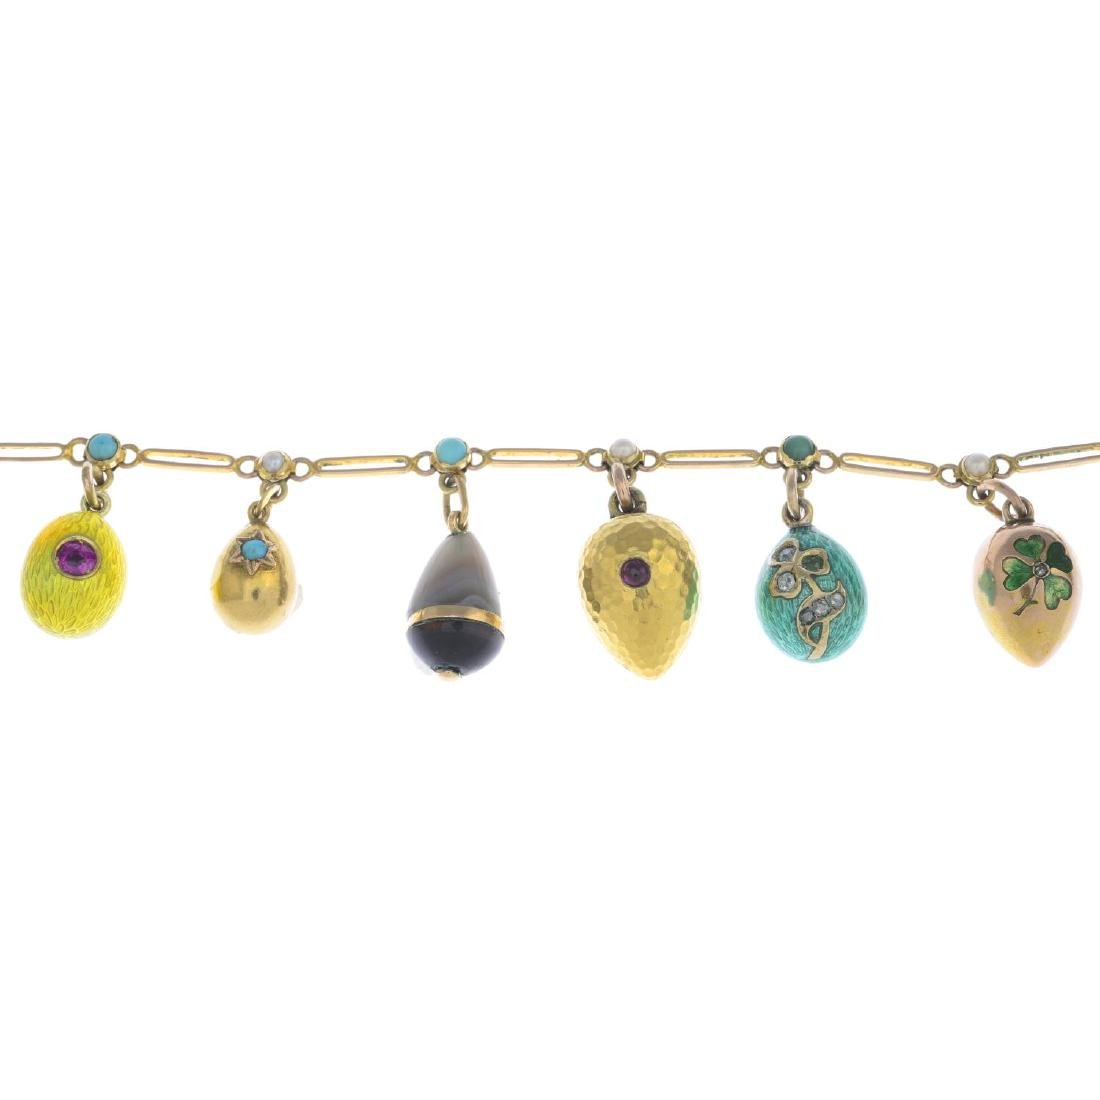 An early 20th century gold charm bracelet. The